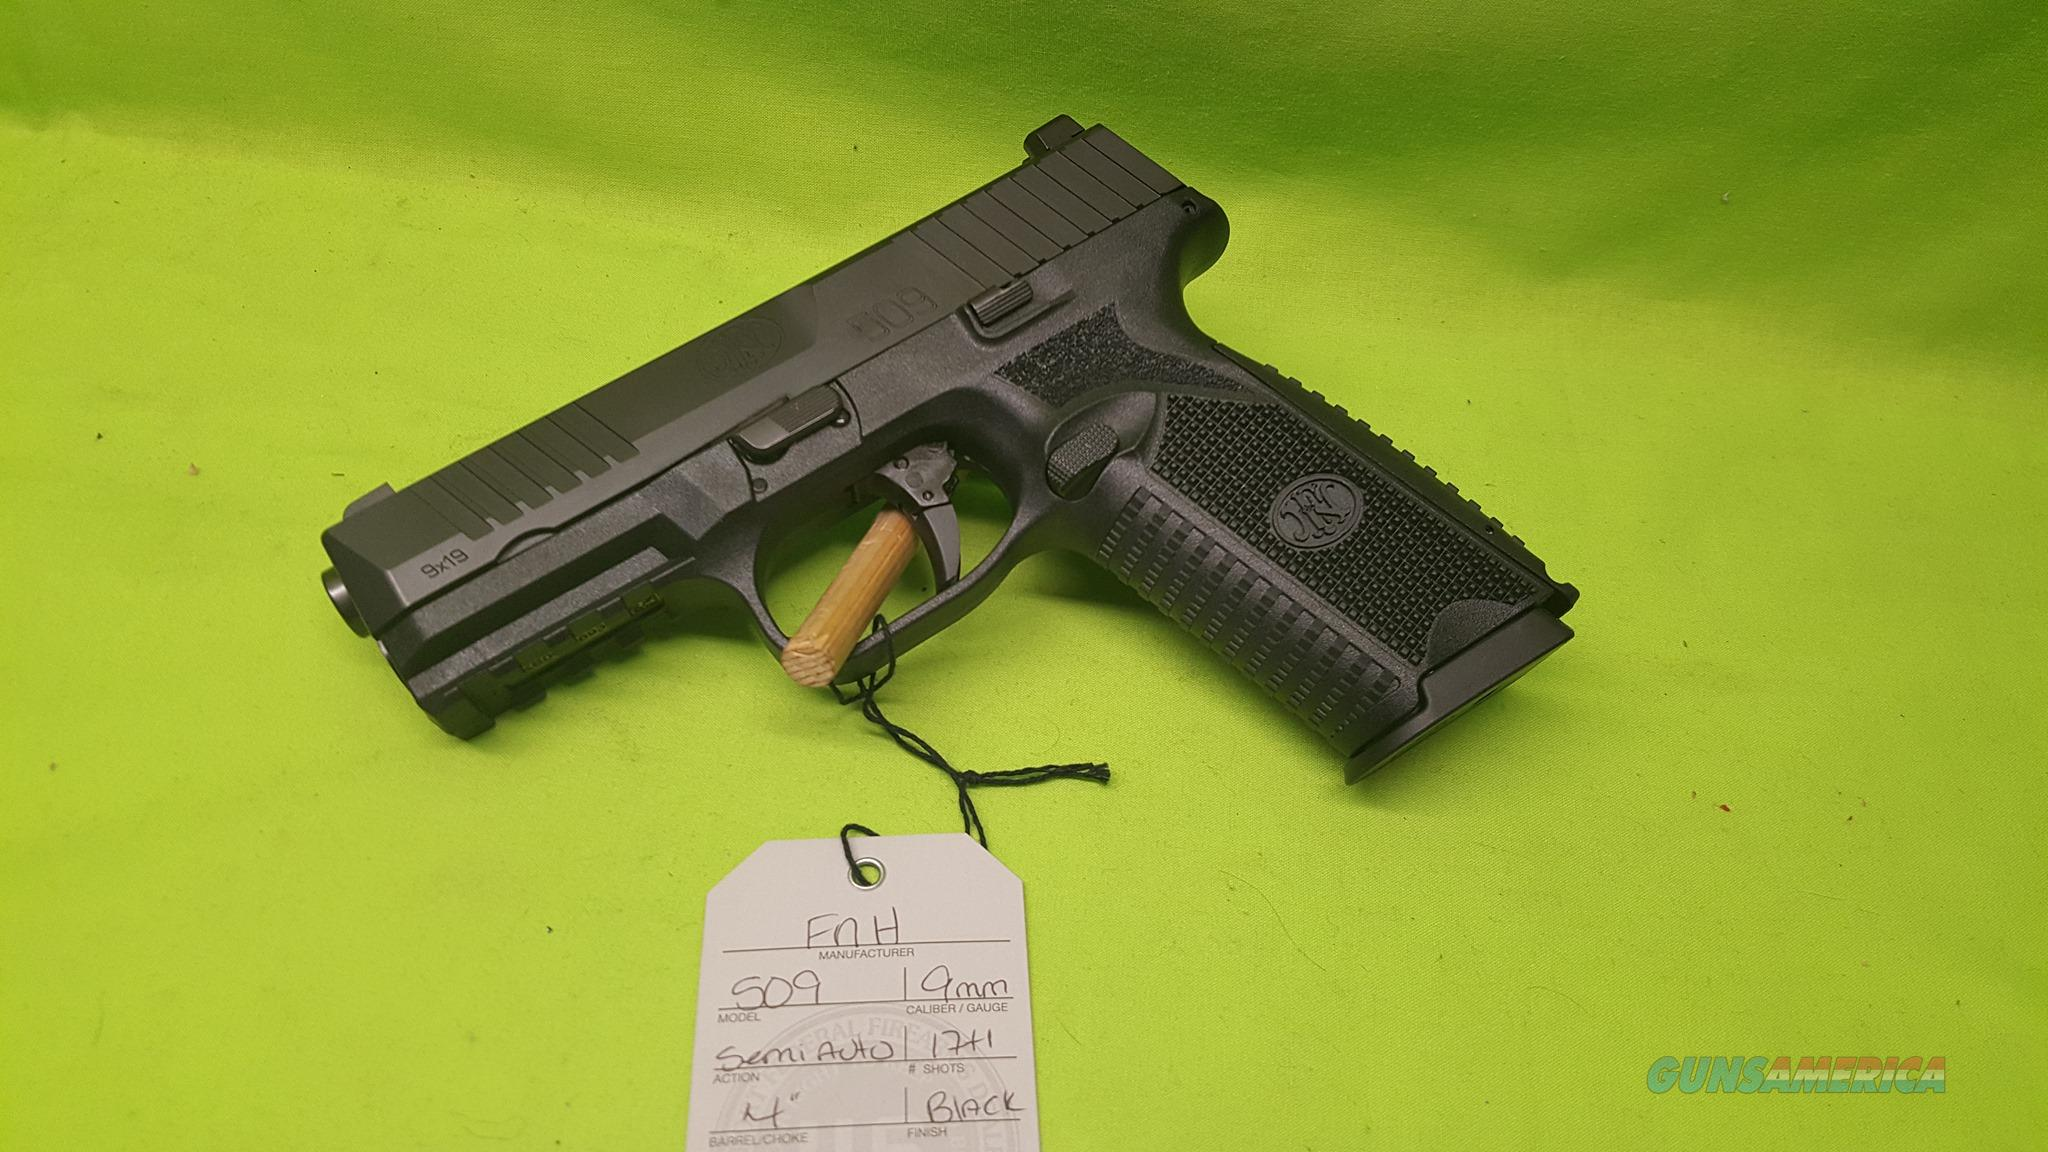 "FN FNH 509 9MM BLK 4"" 17+1 FS FNS 9 MM 66-100002  Guns > Pistols > FNH - Fabrique Nationale (FN) Pistols > FN 509"